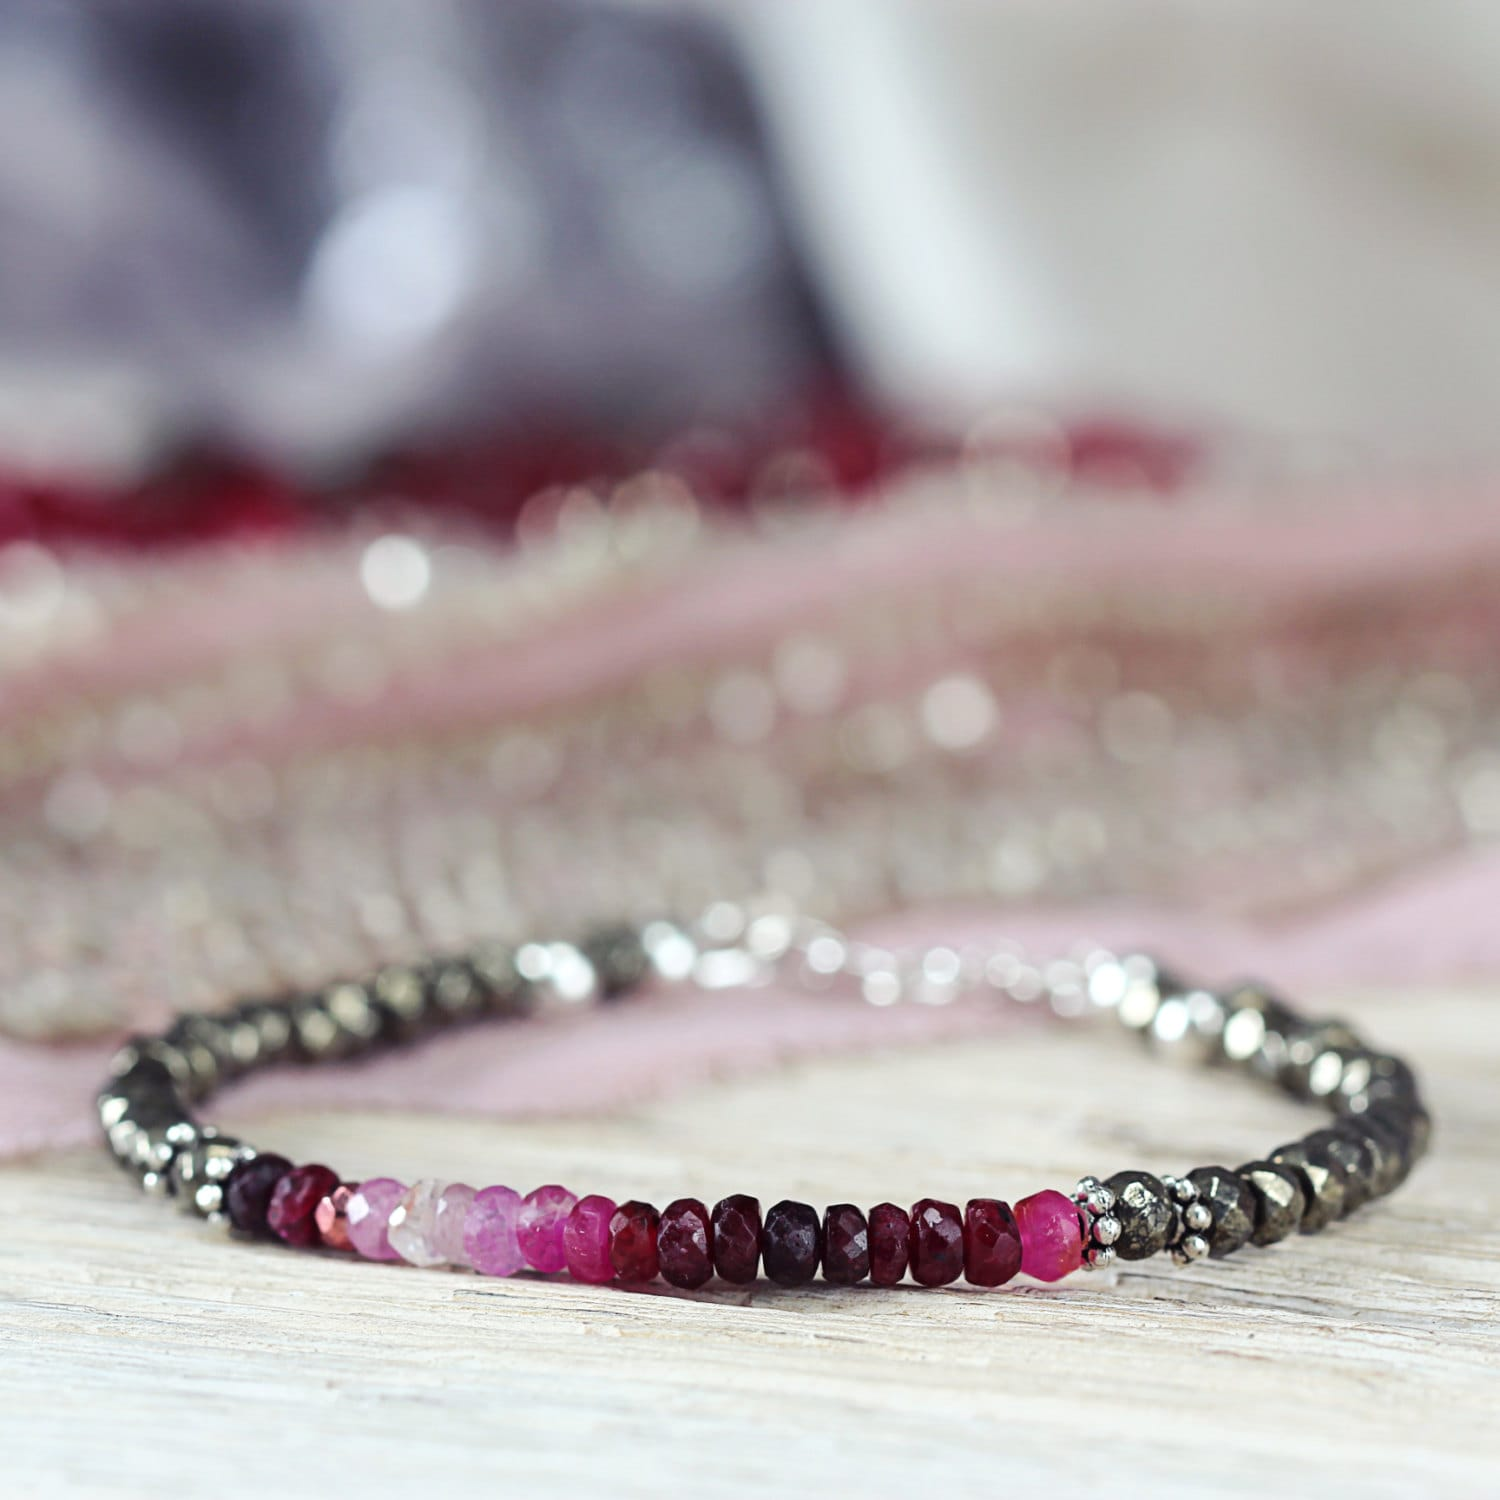 Ombre Ruby Bracelet - July Birthstone Bracelet Gift For Her / Mom / Woman - Gemstone Ruby Jewelry